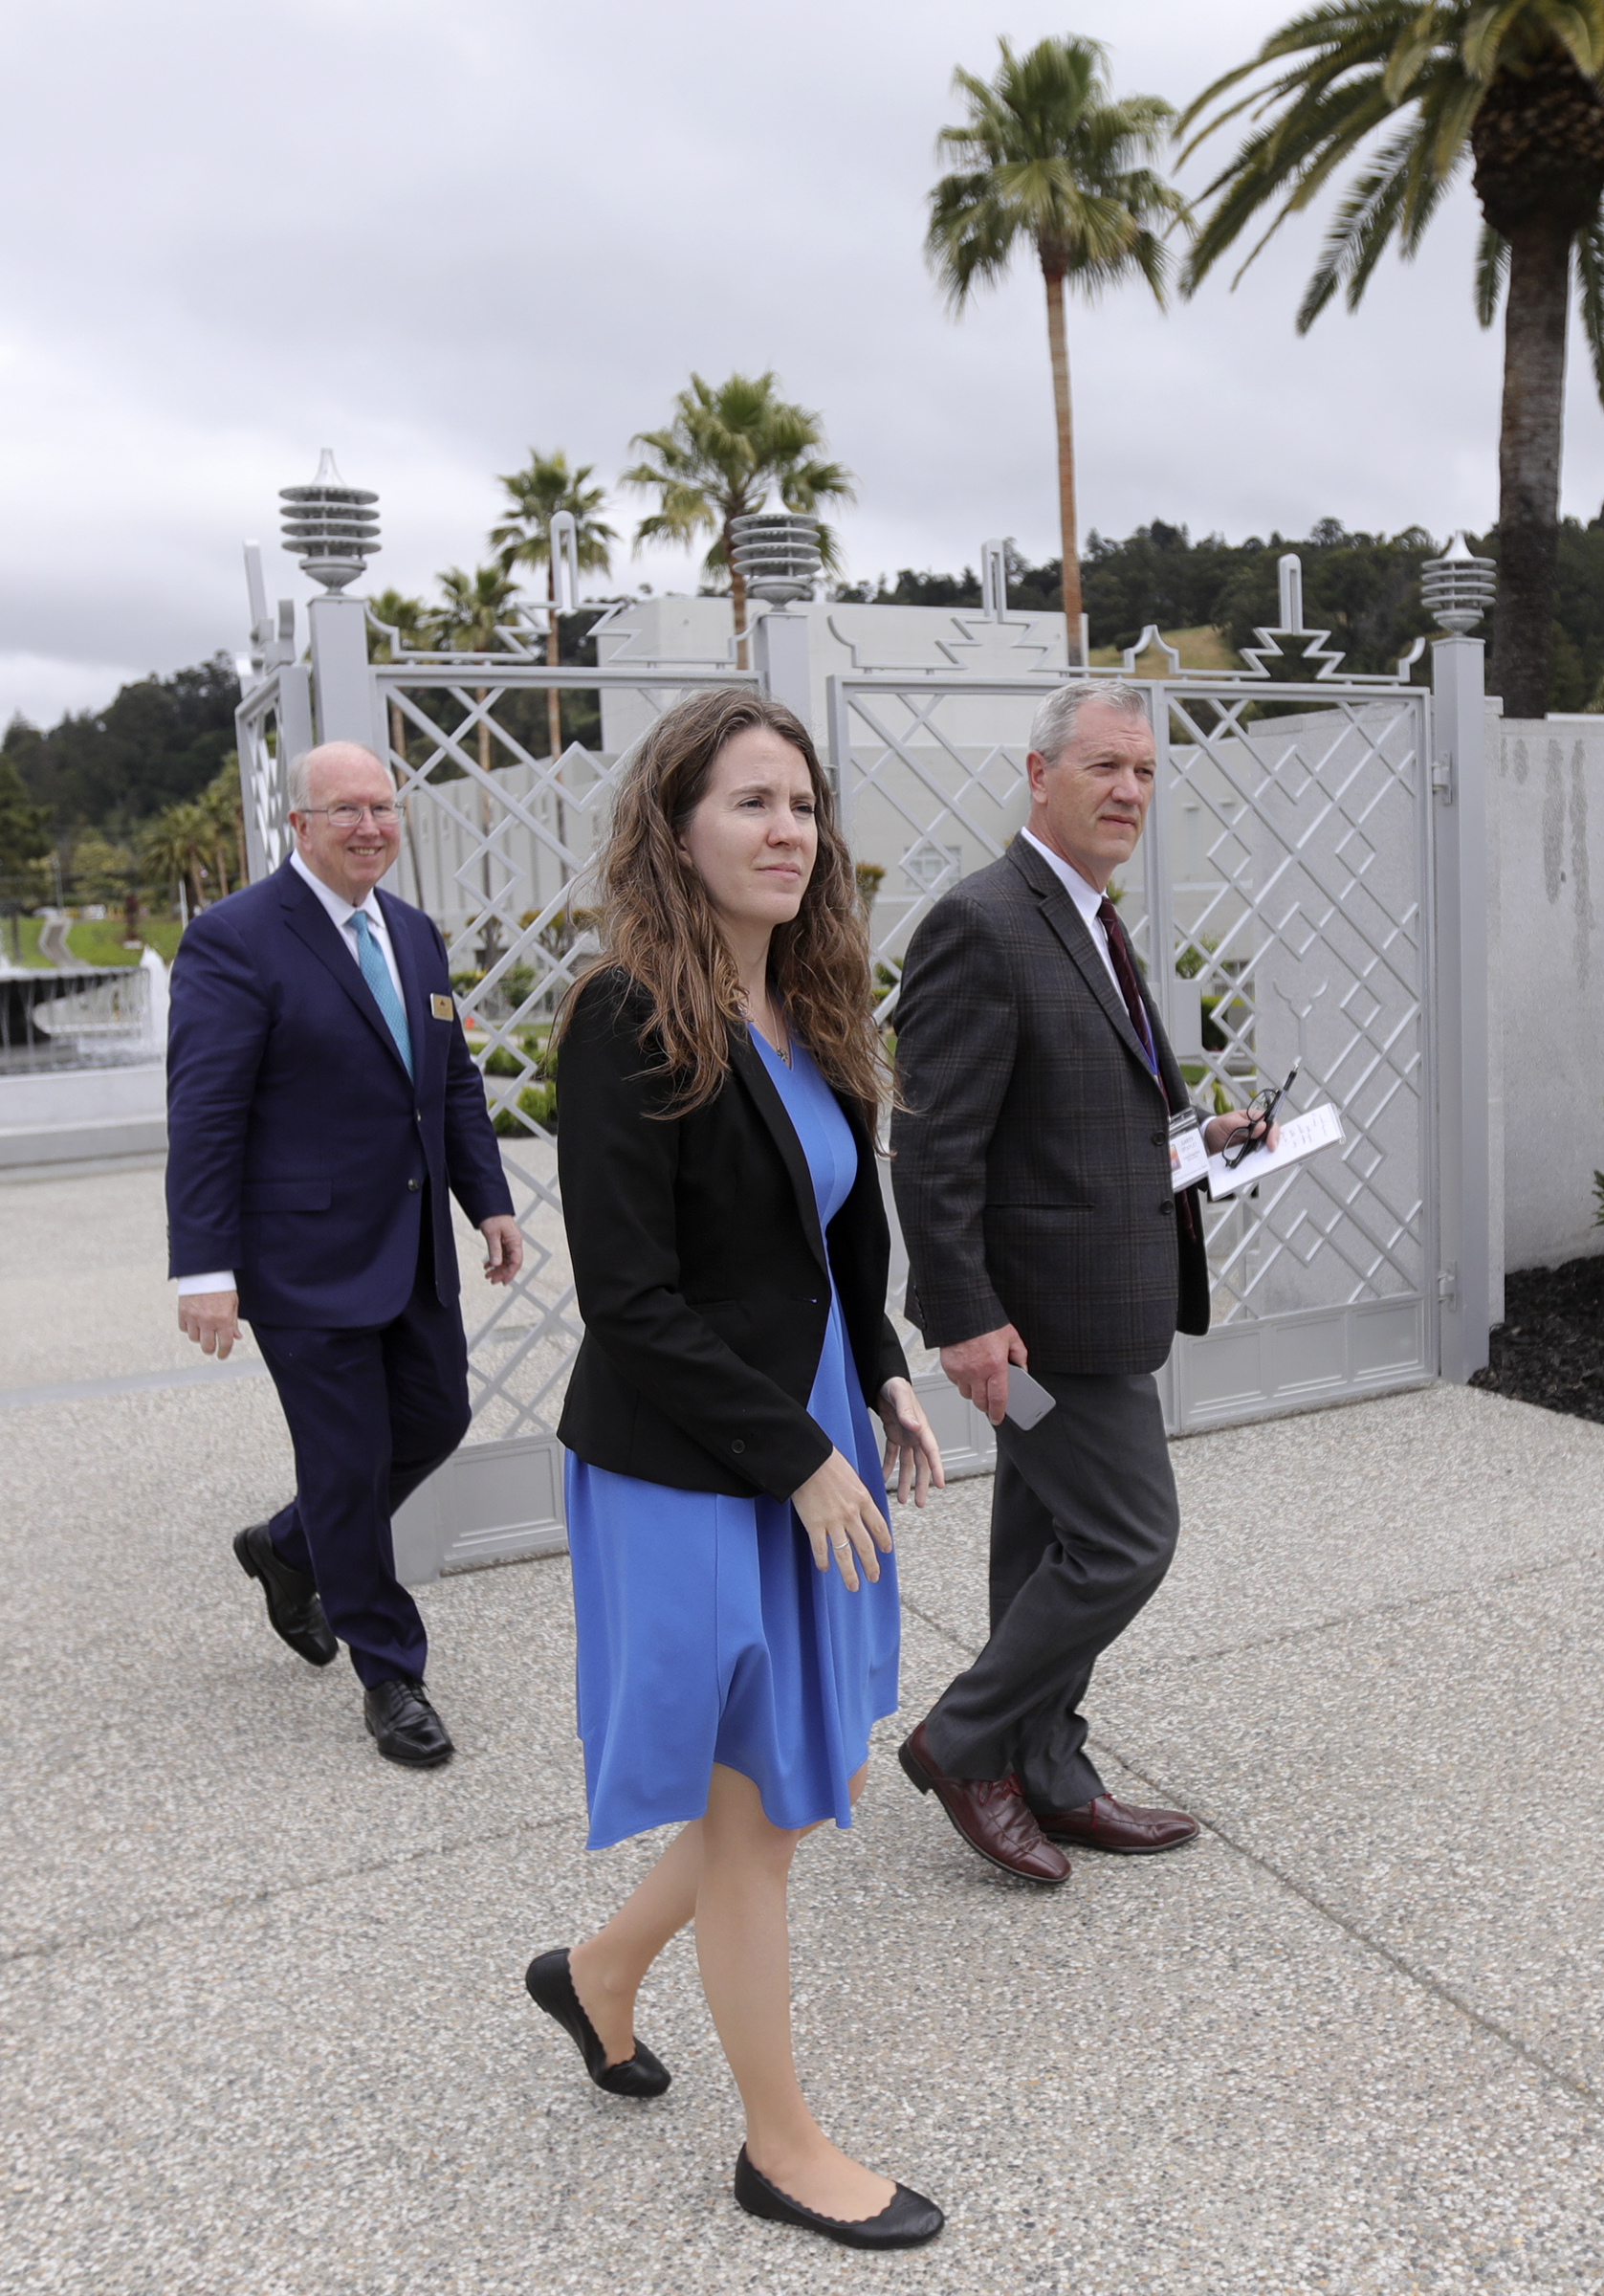 Emily Utt, center, historic sites curator for The Church of Jesus Christ of Latter-day Saints, approaches the newly renovated Oakland California Temple, of The Church of Jesus Christ of Latter-day Saints, for a tour in Oakland, Calif., on Monday, May 6, 2019.